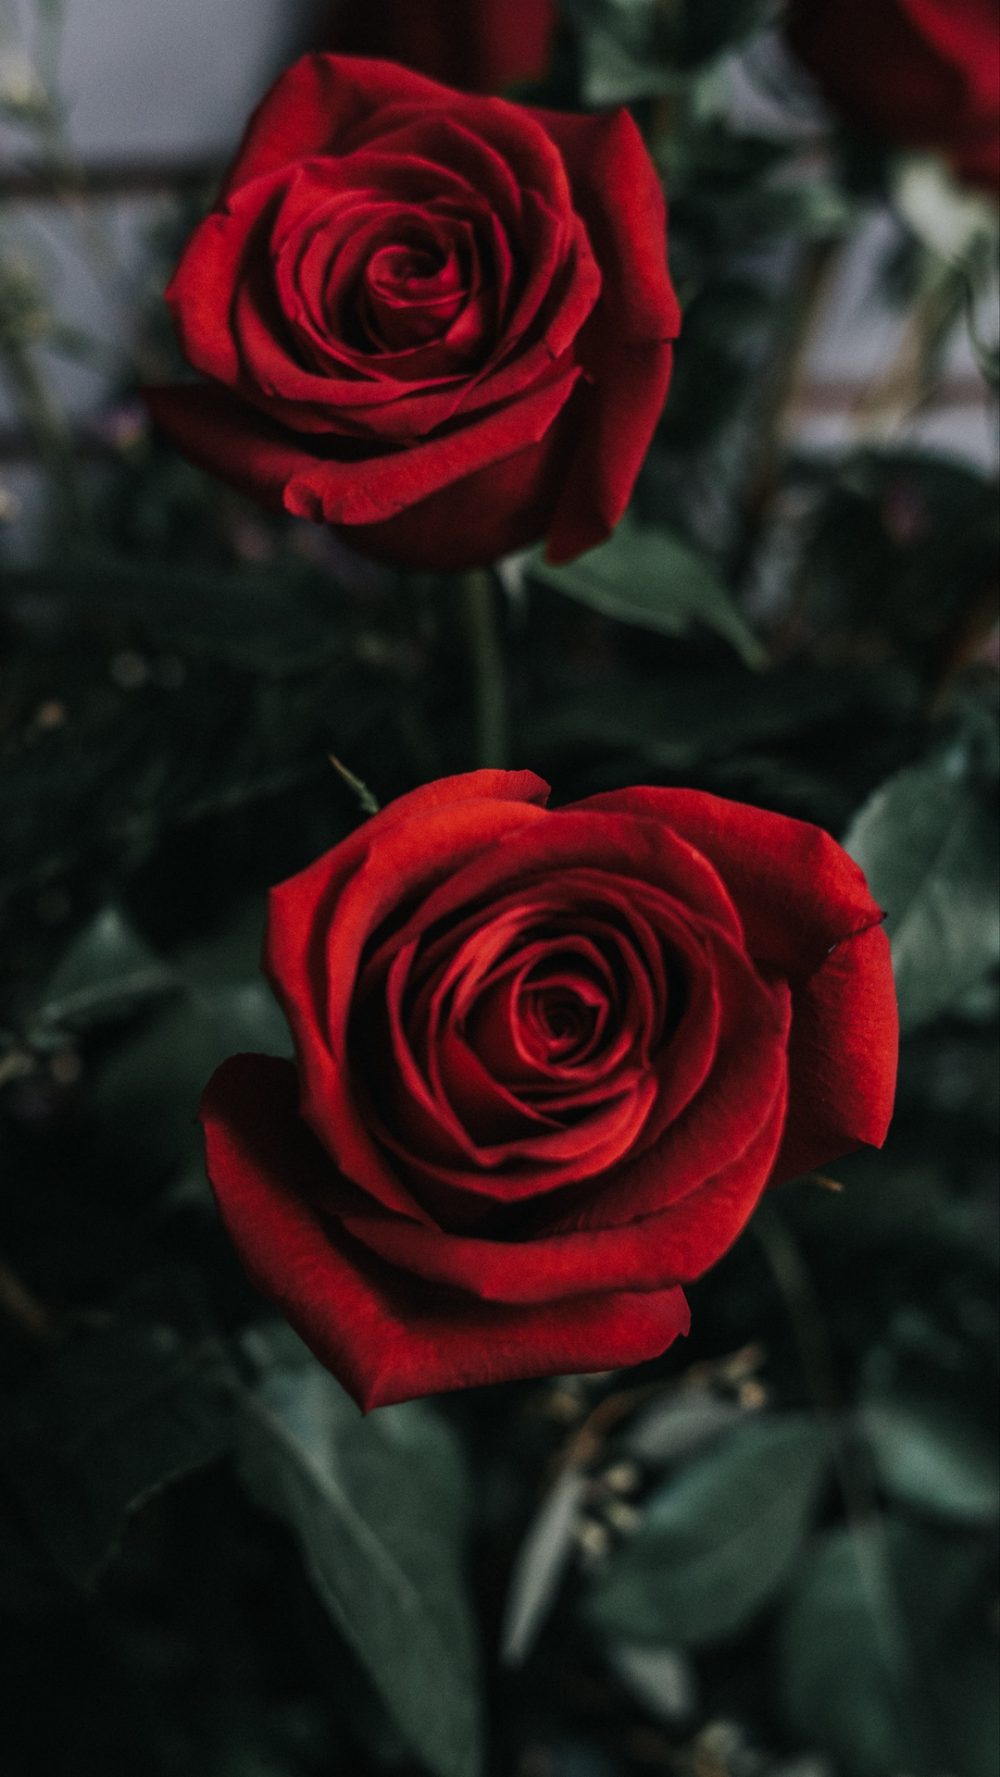 Download Wallpaper 1080x1920 Rose Flower Bud Red Samsung Galaxy S4 S5 Note Sony Xperia Z Z1 Z In 2020 Flower Phone Wallpaper Red Roses Wallpaper Rose Wallpaper